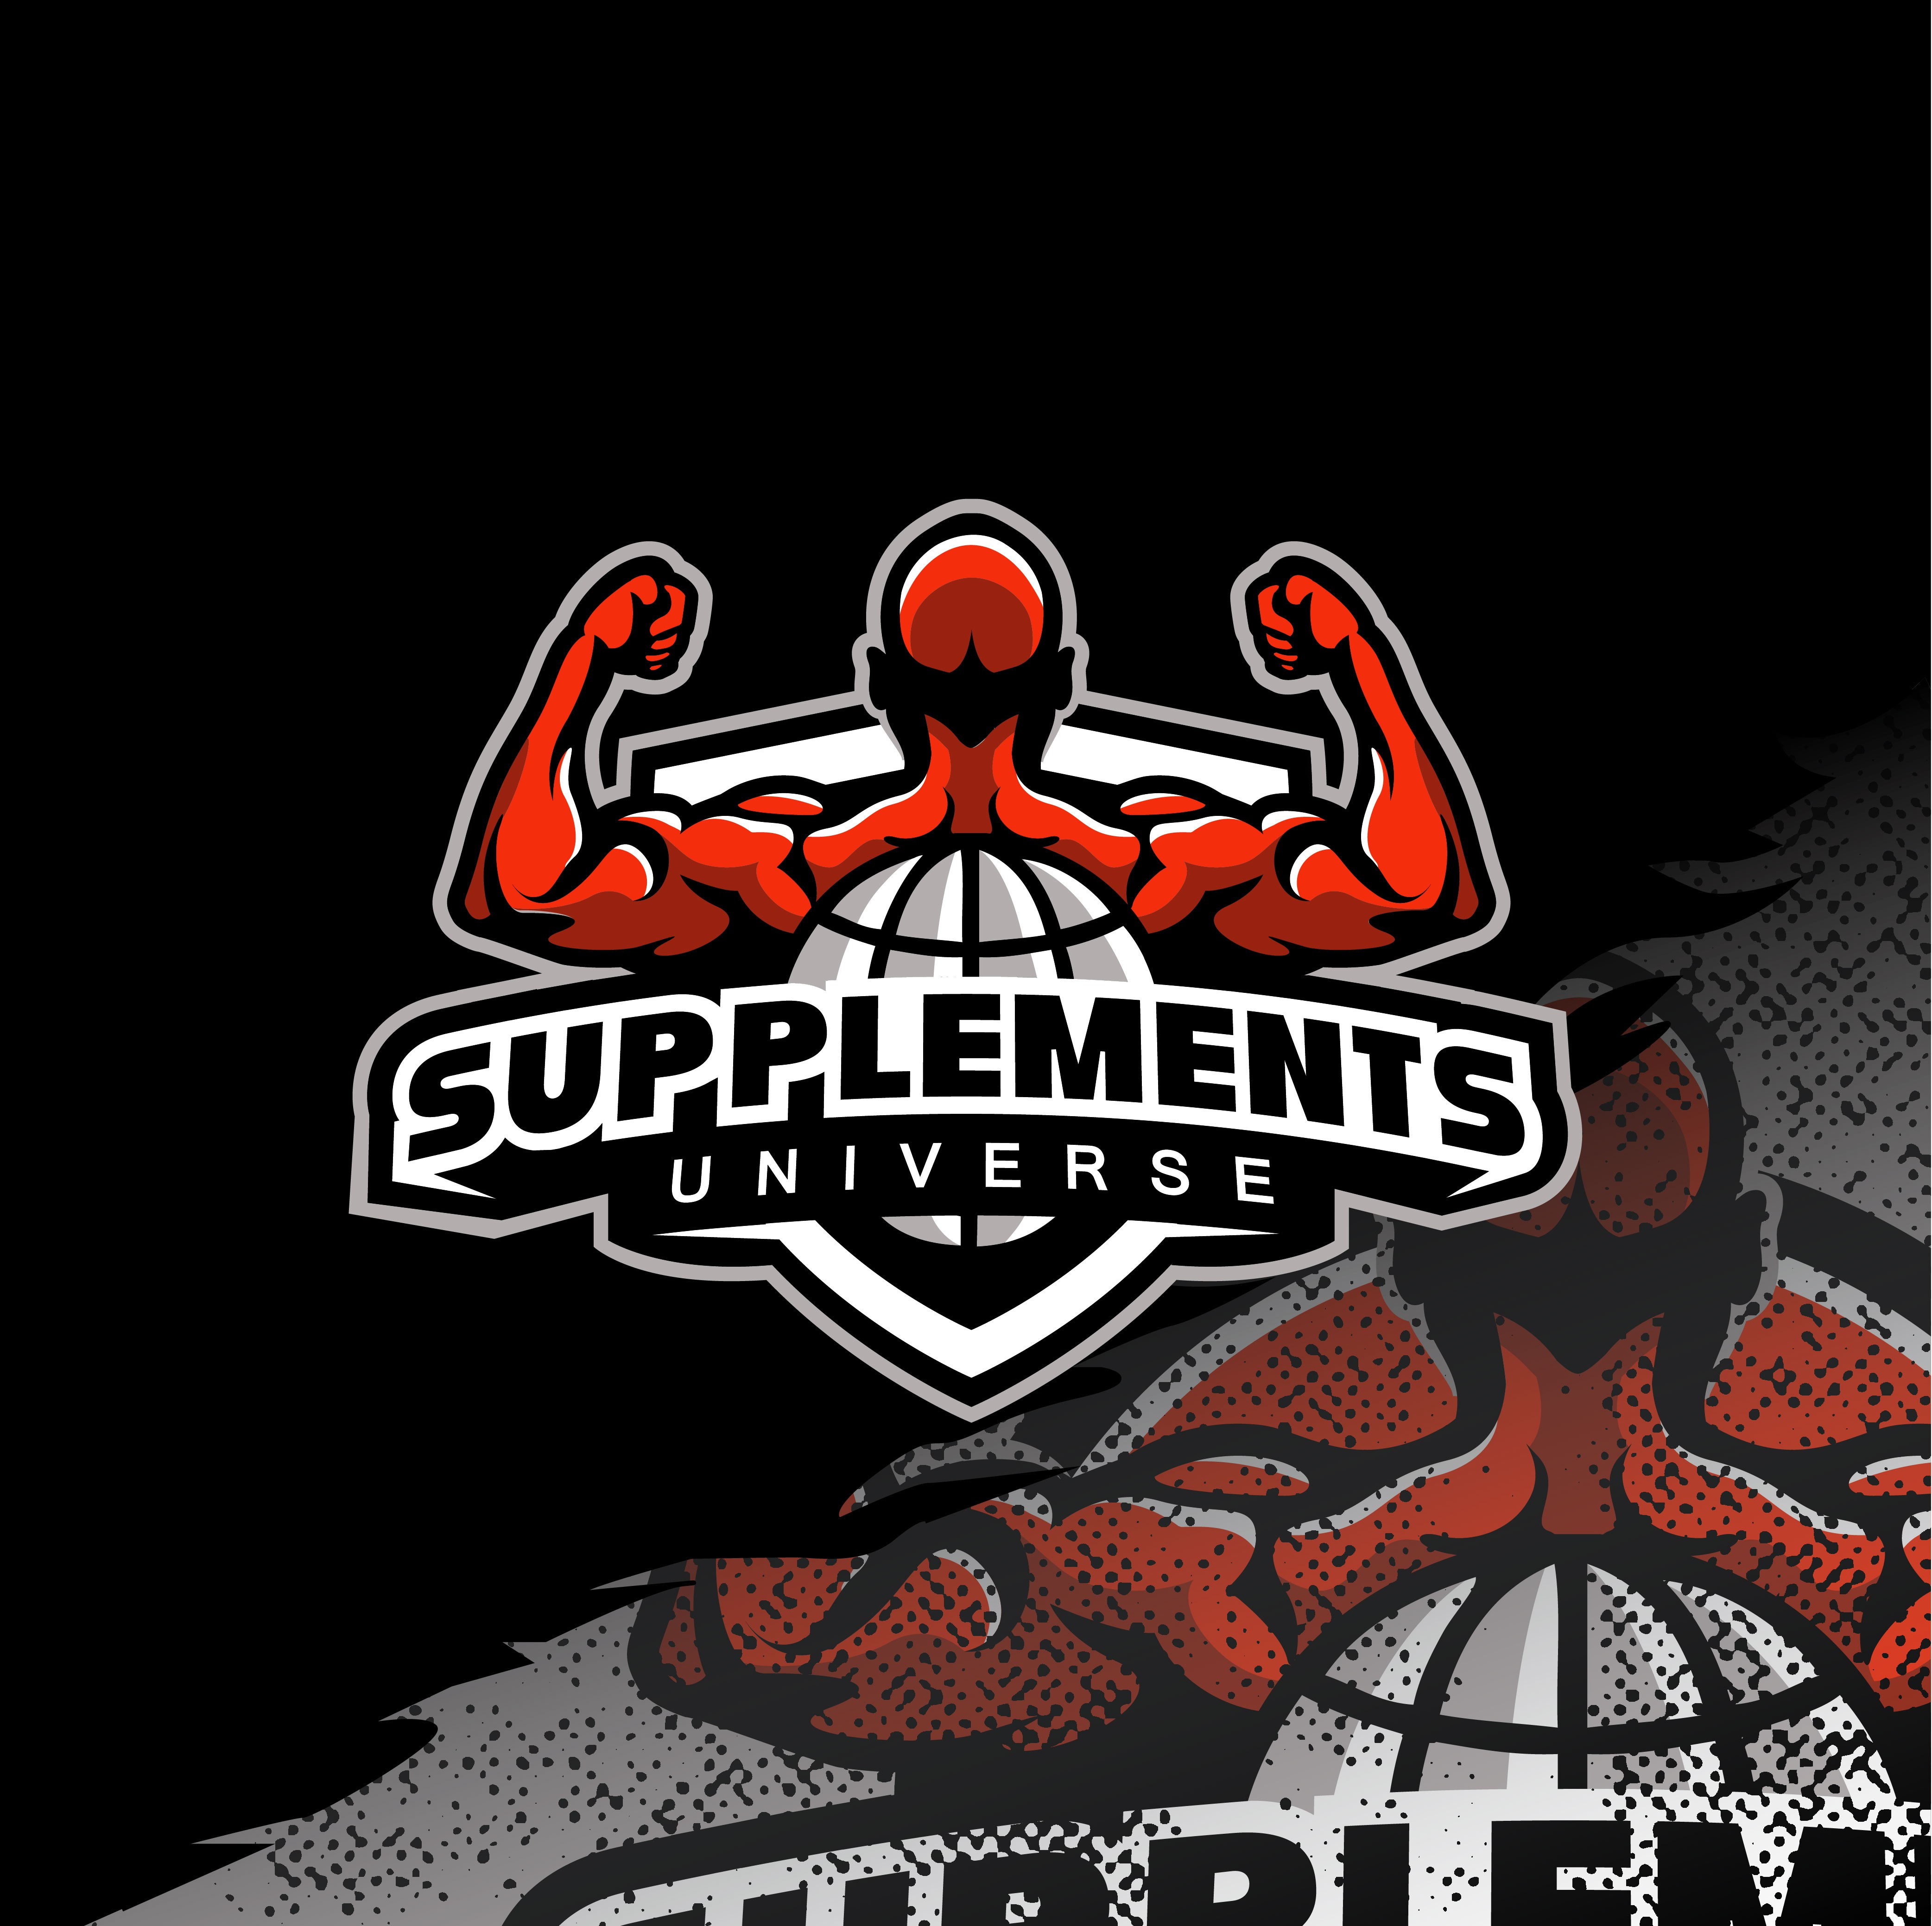 Looking for a logo a supplements store is born !!    Supplements Universe needs a logo